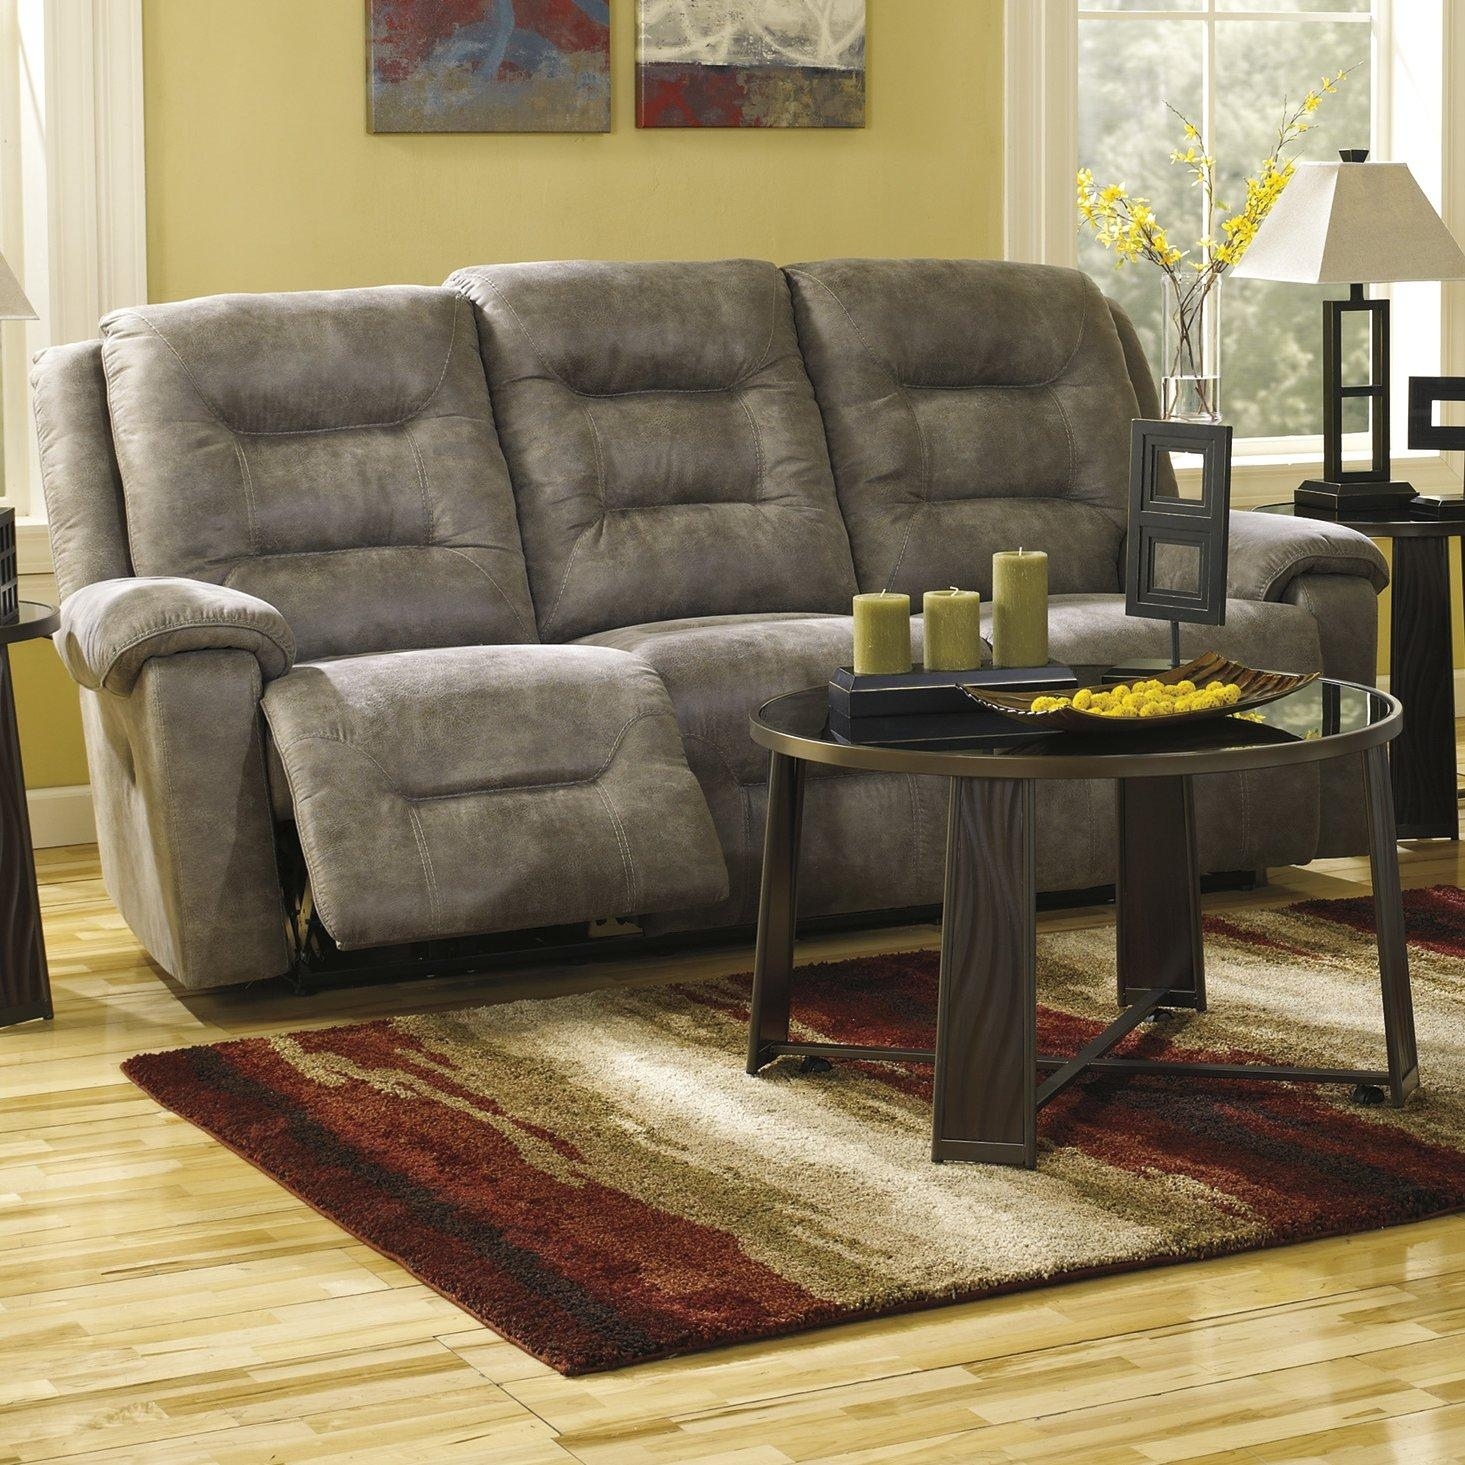 Berkline Sofa With Design Hd Images 8138 | Kengire In Berkline Sofa (View 6 of 20)